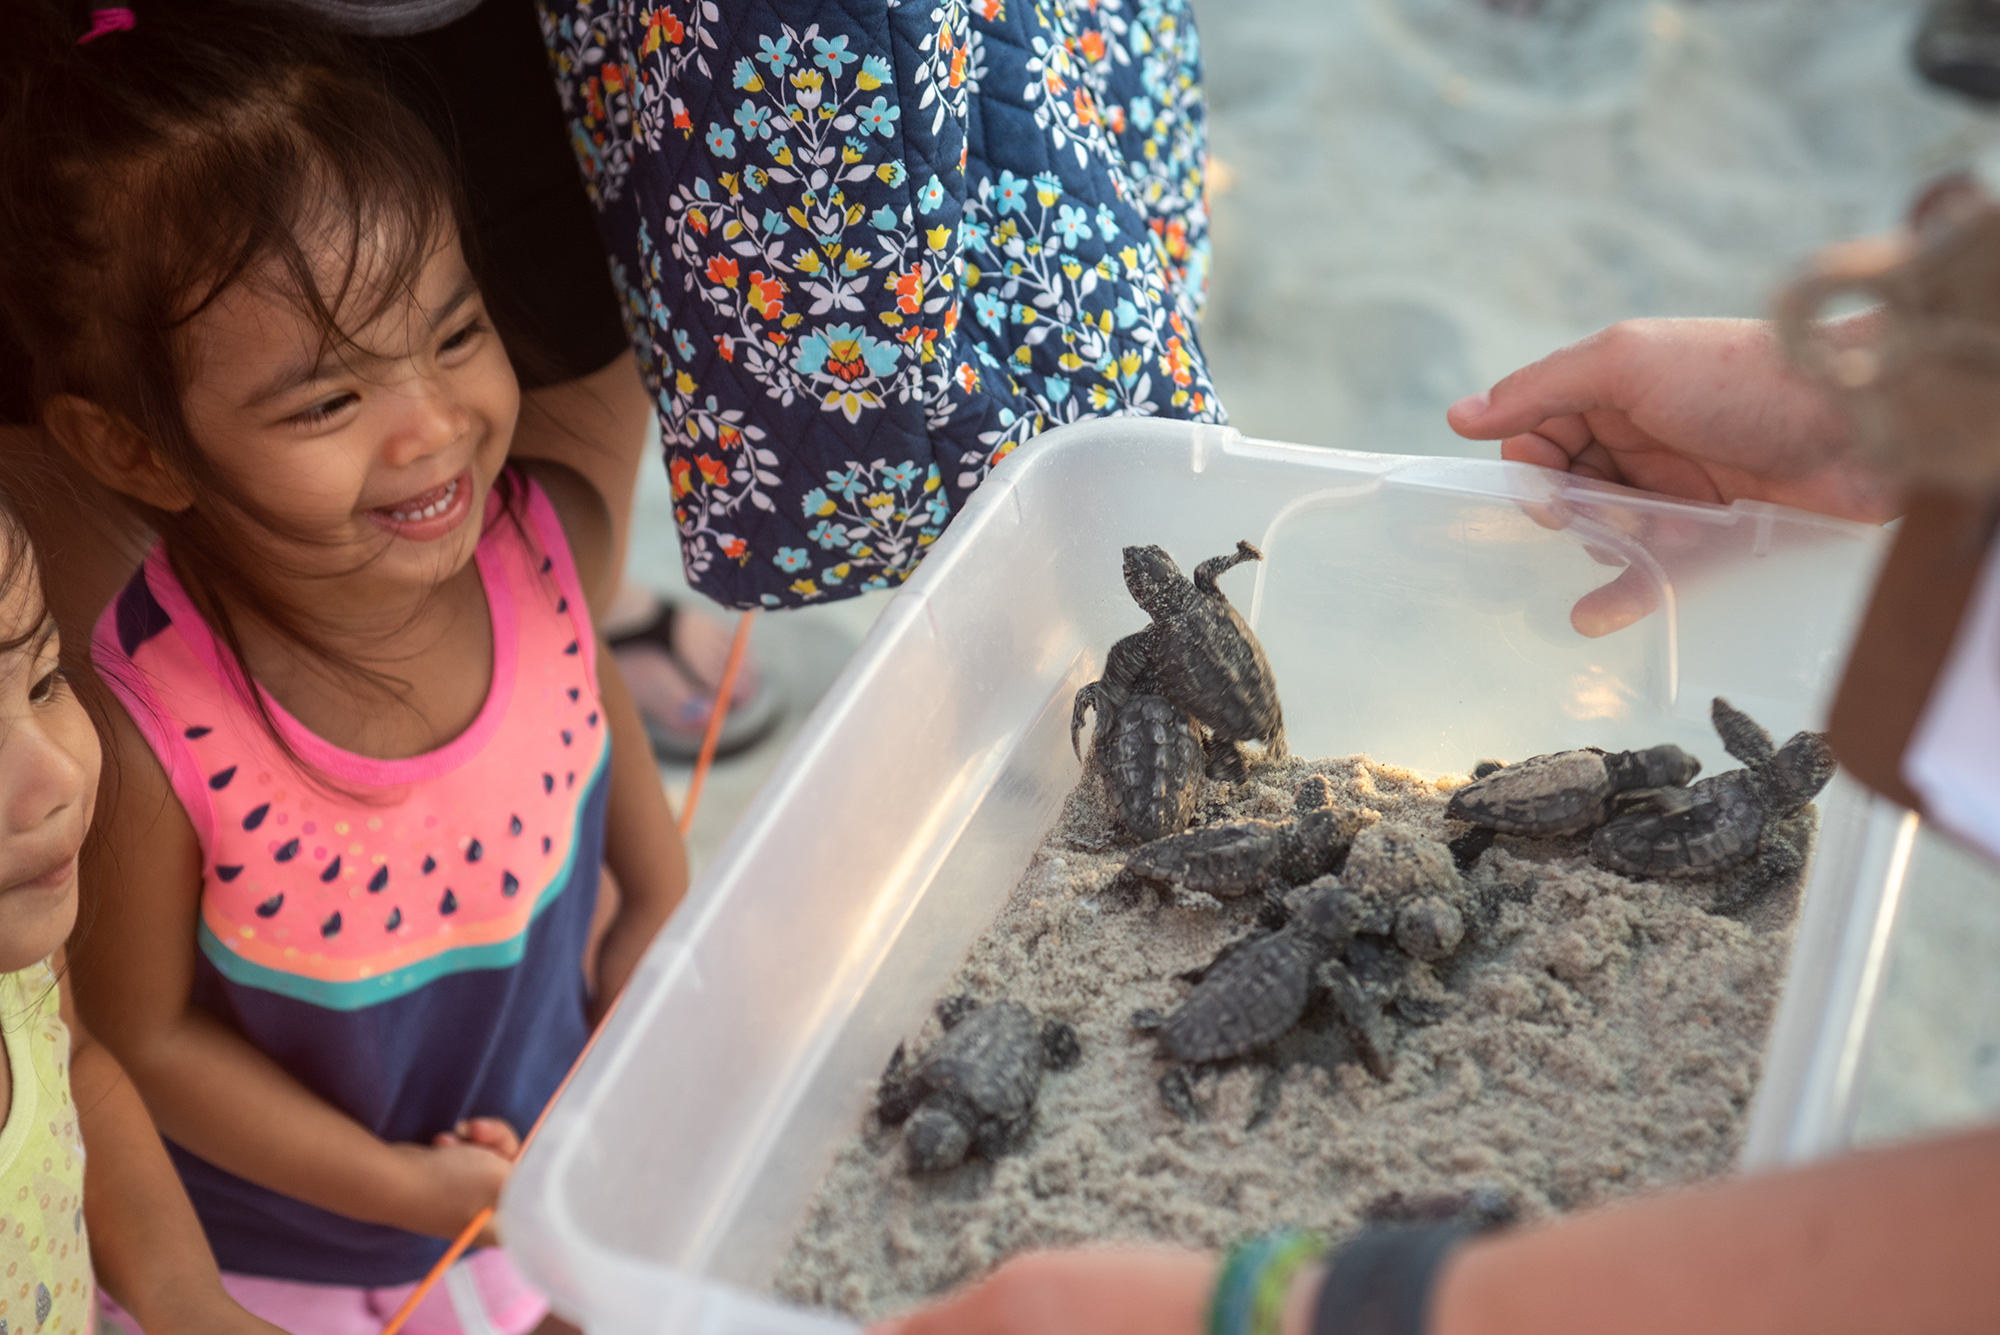 a conservancy staff member shows baby turtles to young kids watching the excavation